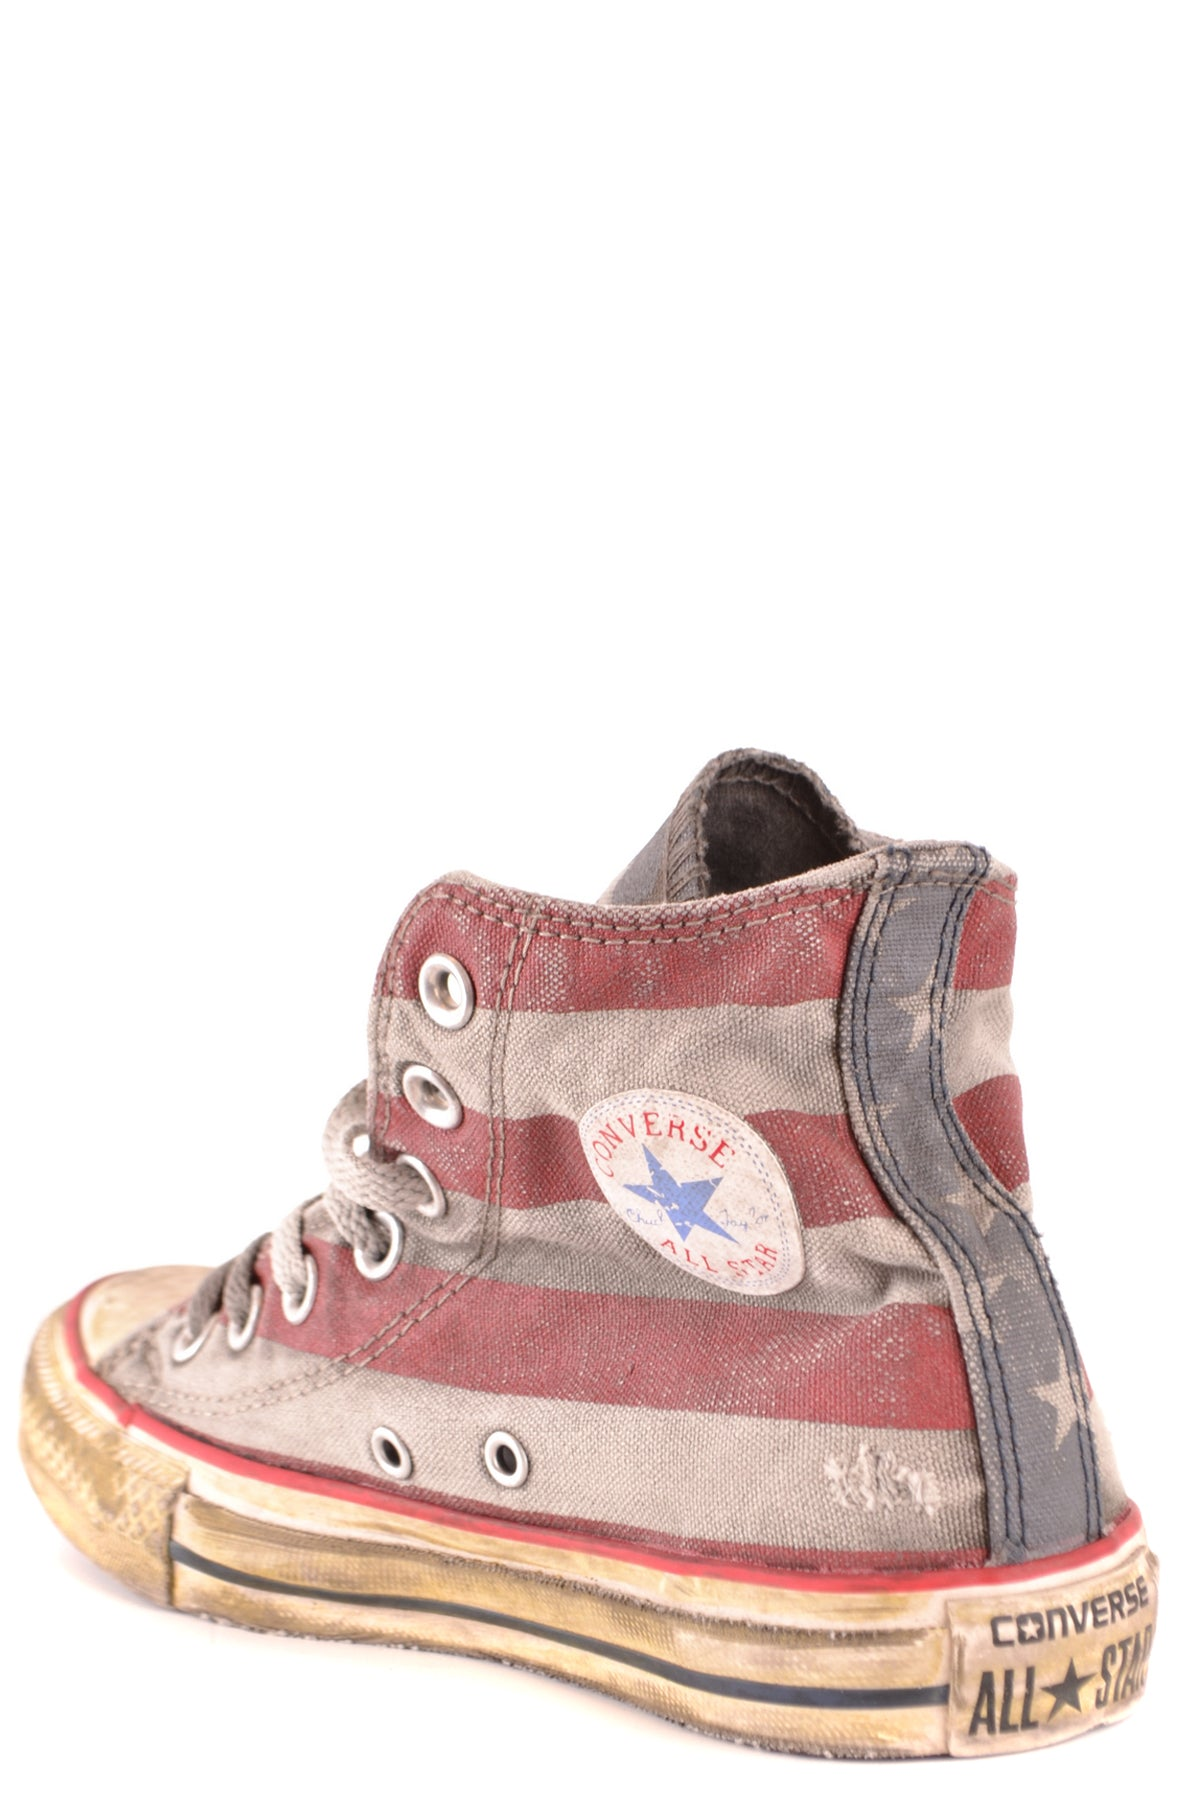 Shoes Converse--Product Details Type Of Accessory: ShoesTerms: New With LabelYear: 2018Main Color: MulticolorGender: WomanMade In: ChinaManufacturer Part Number: 156887CSize: EuSeason: Spring / SummerComposition: Tissue 100%-Keyomi-Sook